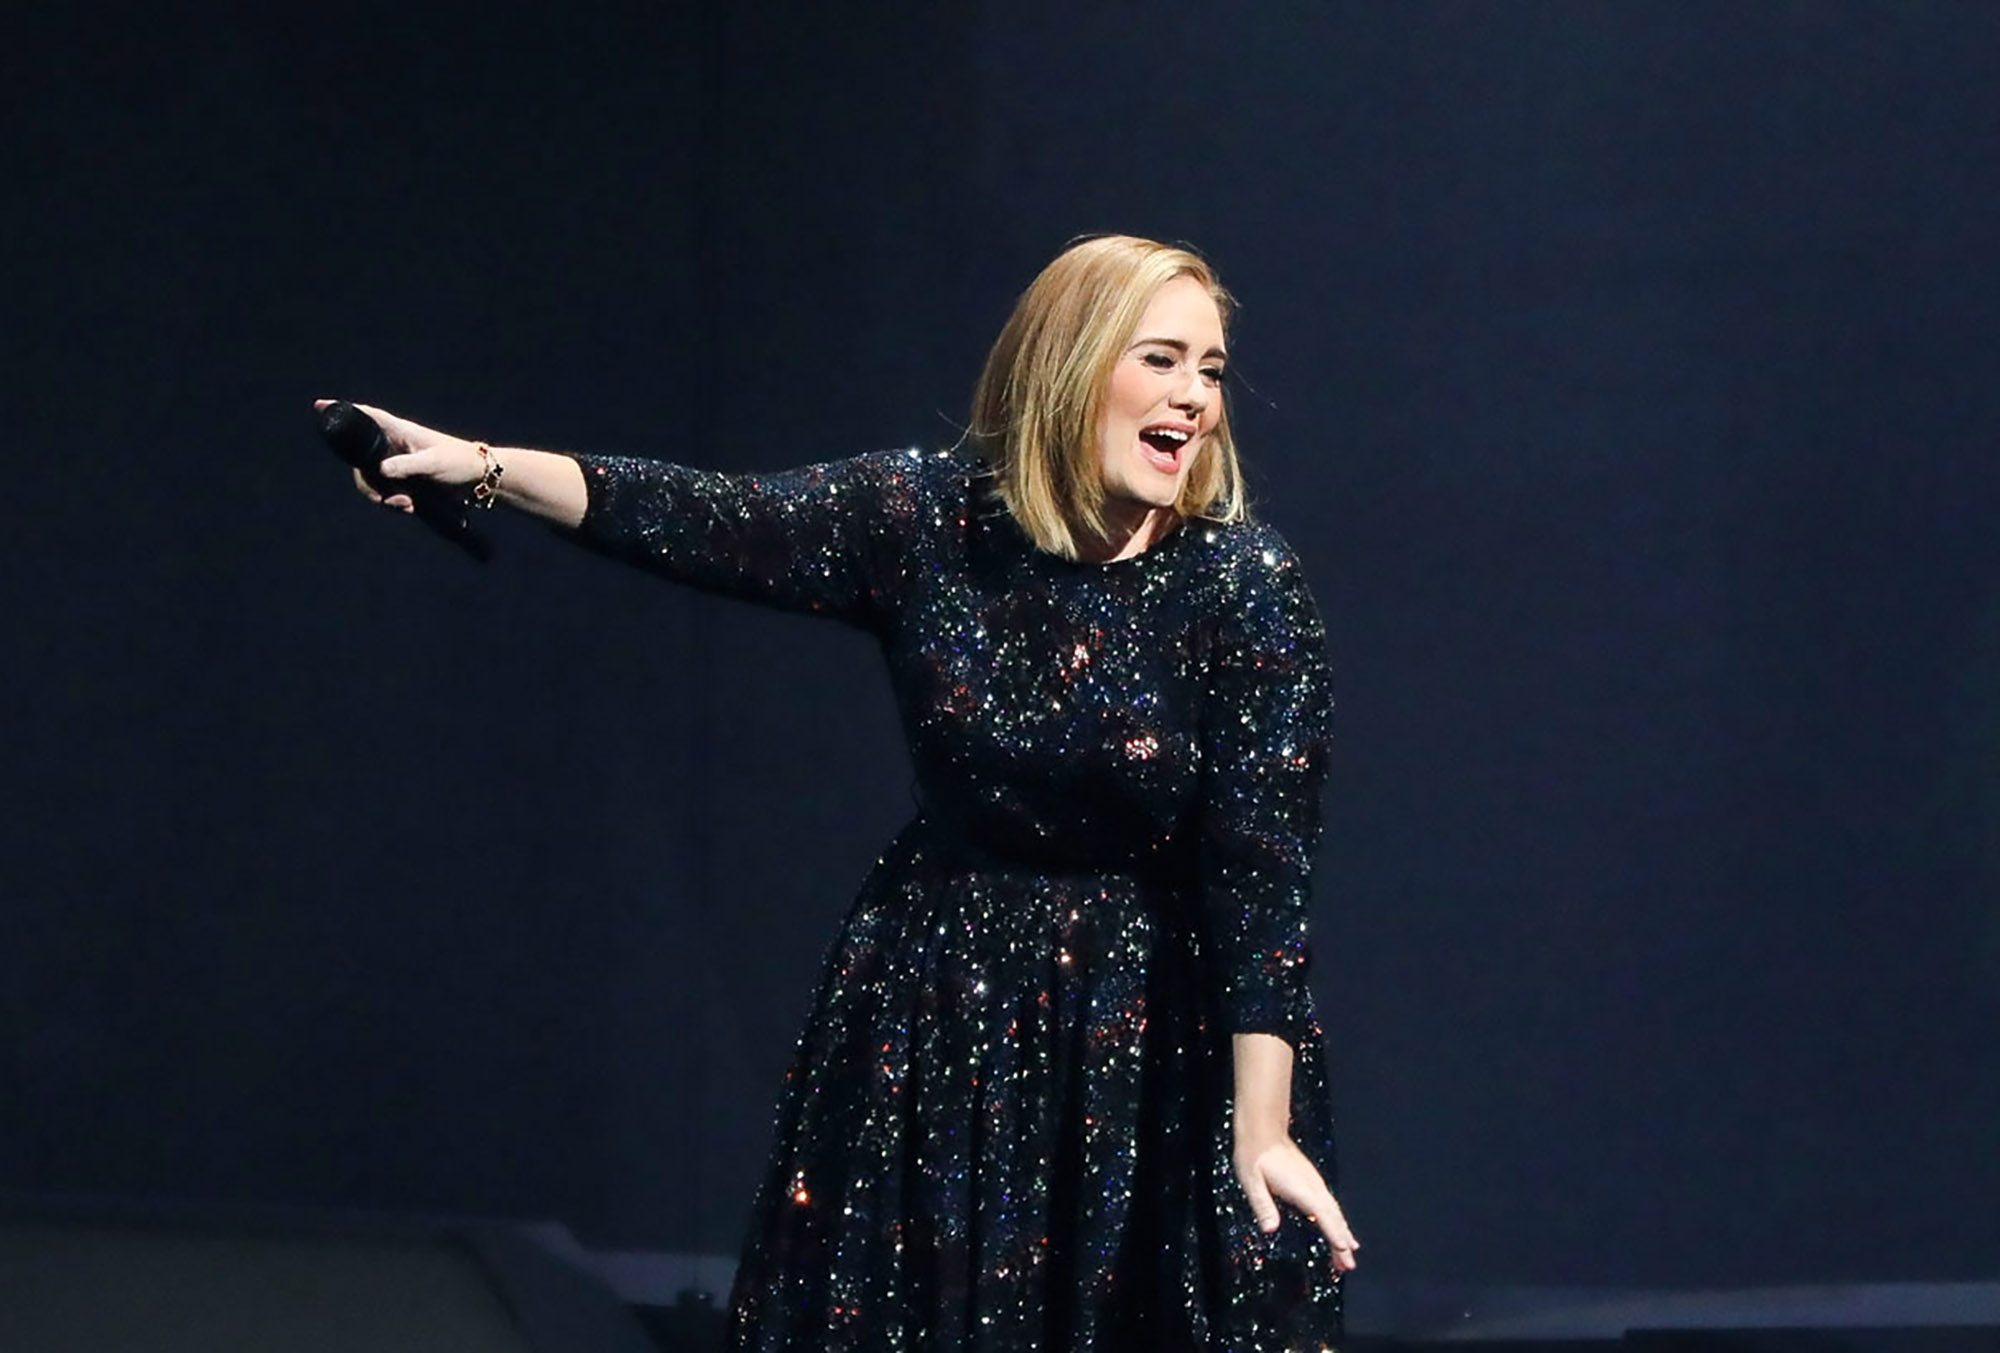 Adele performs at The Palace of Auburn Hills on September 6, 2016 in Auburn Hills, Michigan.  (Photo by Scott Legato/Getty Images for BT PR)